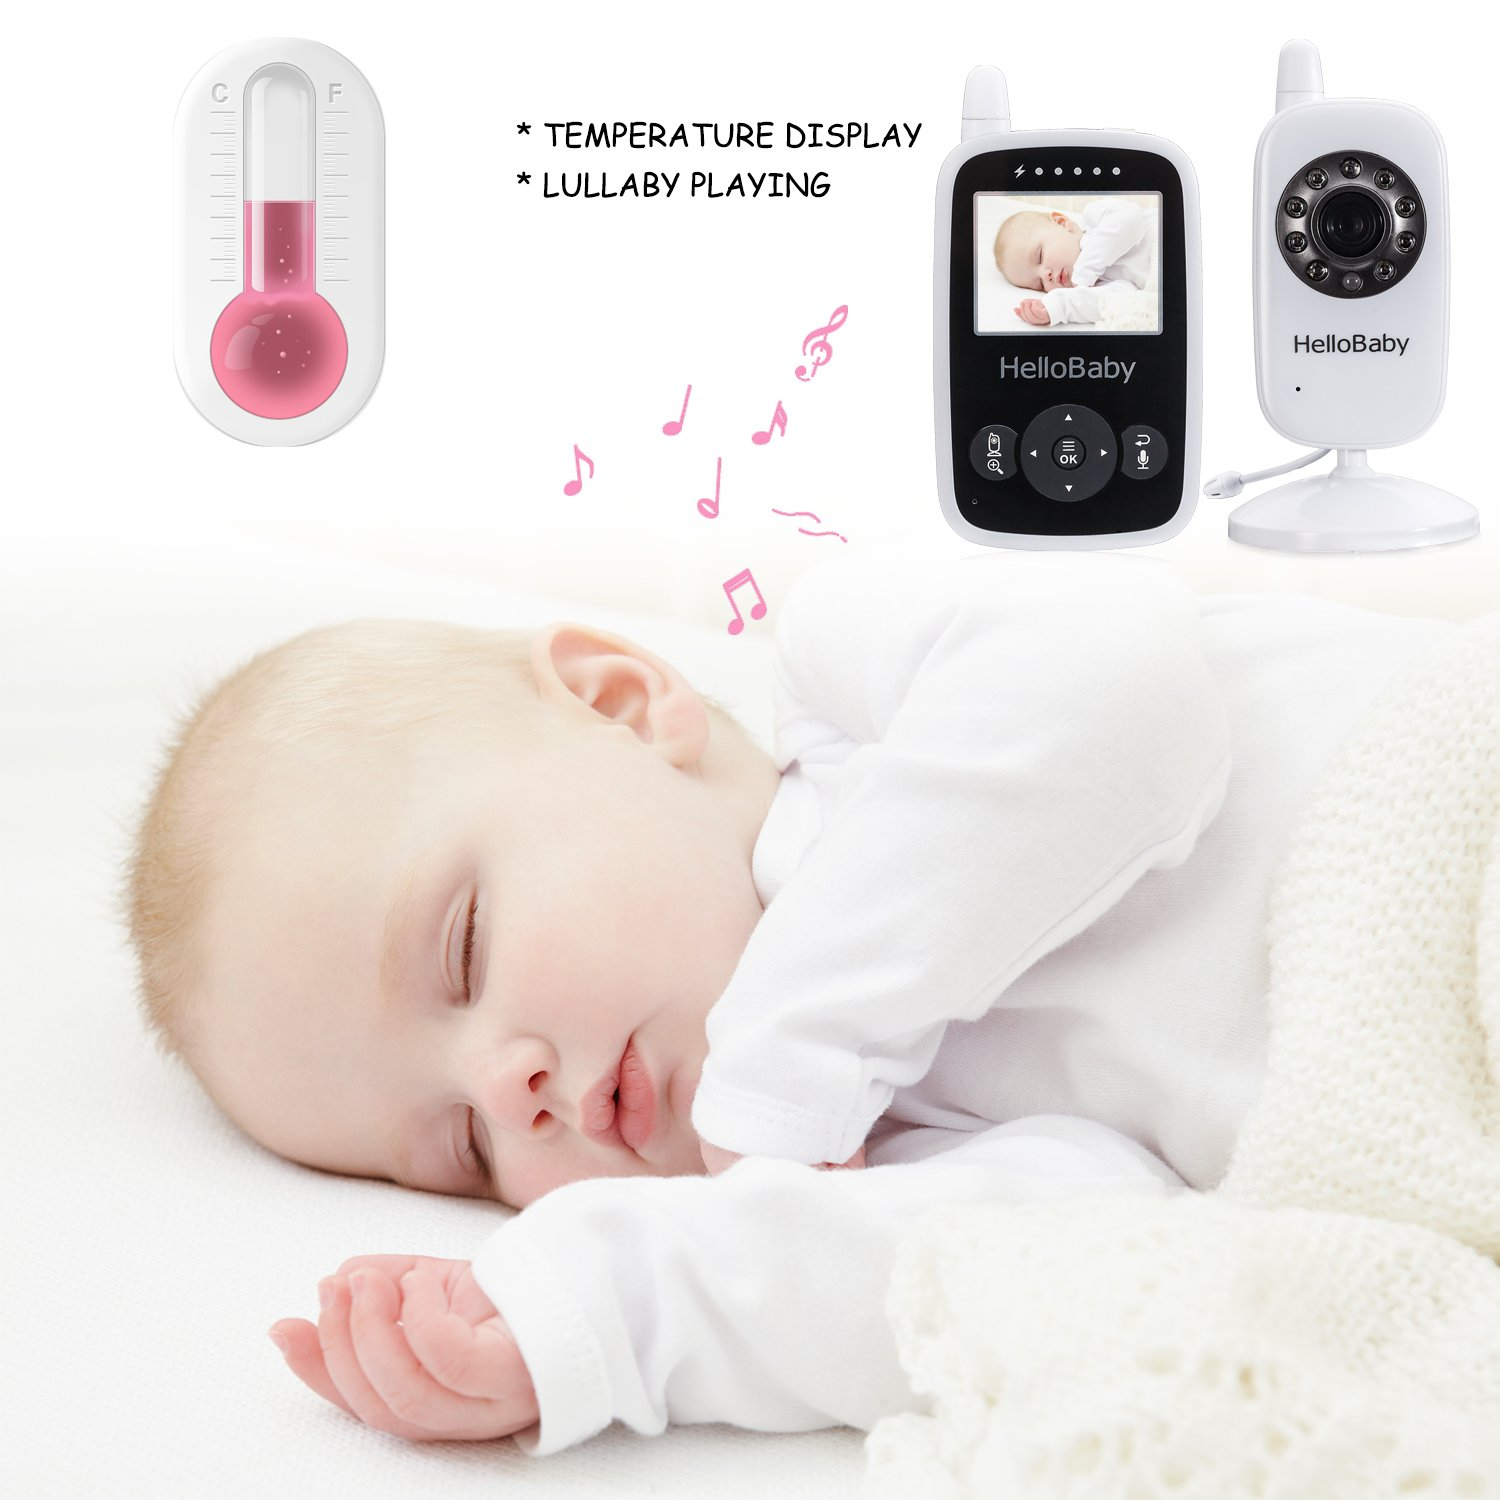 Hello Baby Wireless Video Baby Monitor with Digital Camera HB24, Night Vision Temperature Monitoring & 2 Way Talkback System, White by HelloBaby (Image #9)